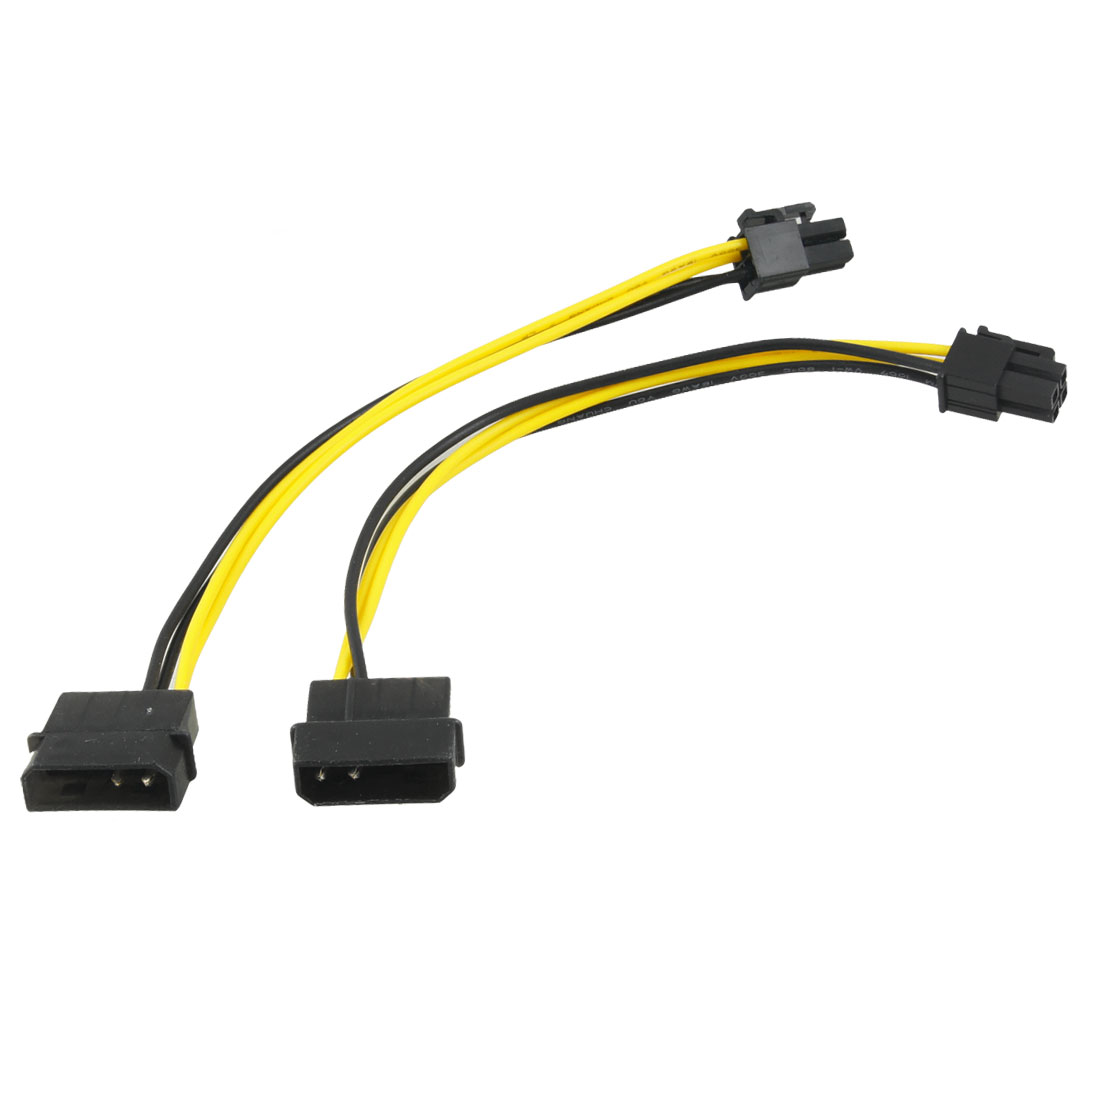 2 Pcs Black Yellow ATX 4 Pin Female to Male F/M Power Adapters Cable for PC